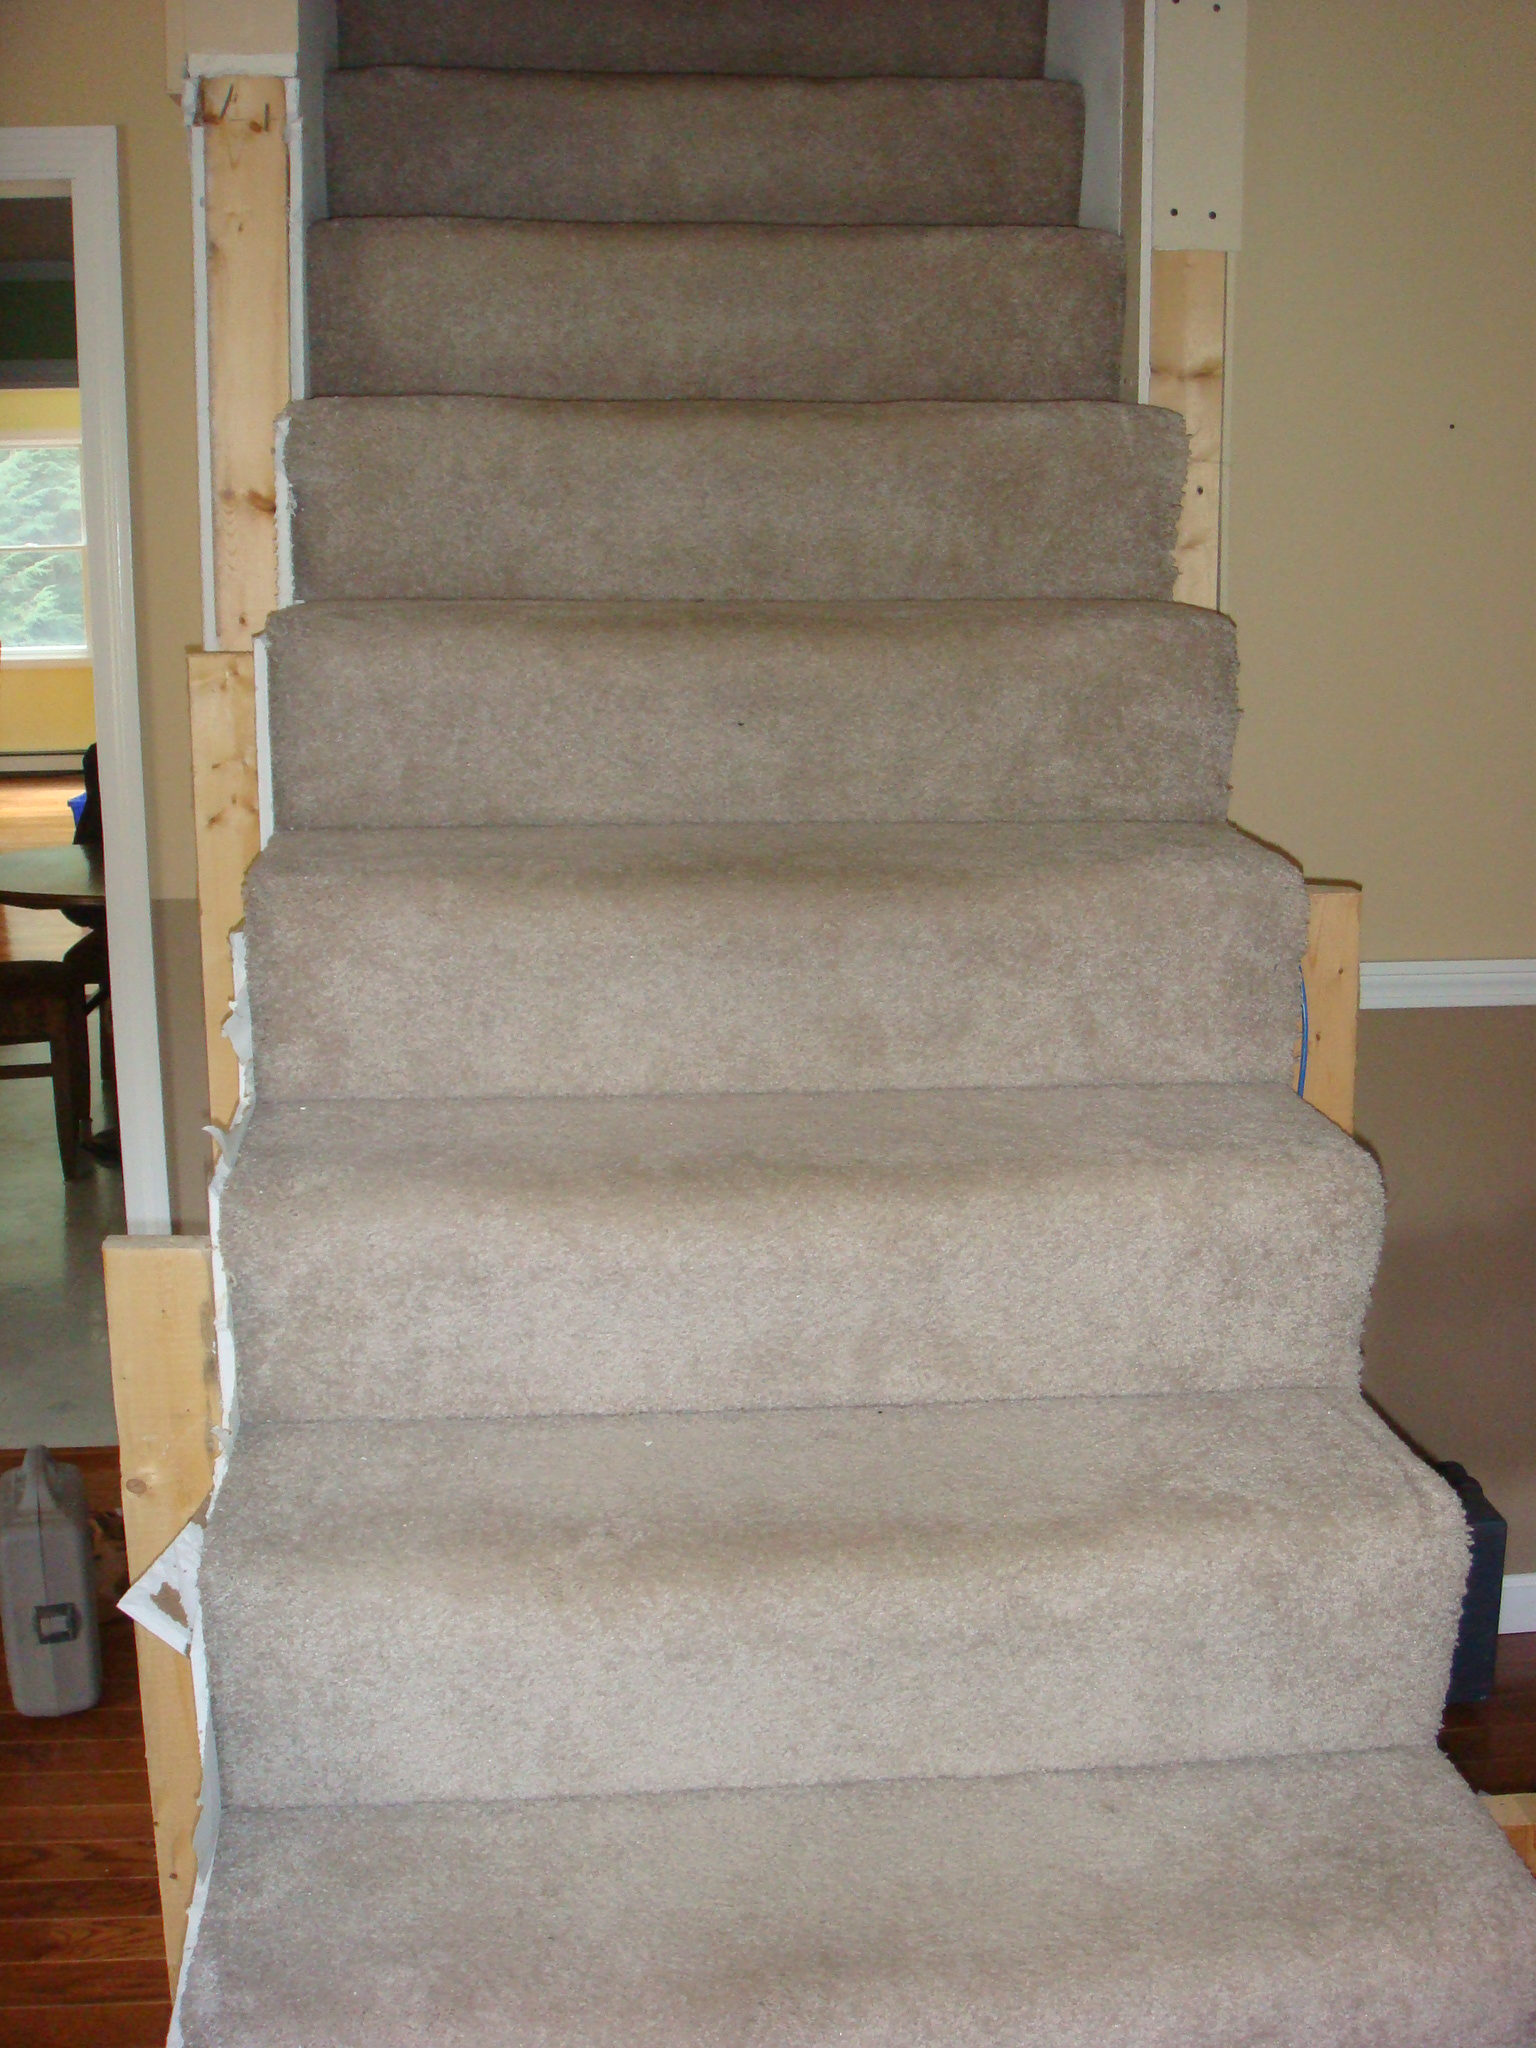 From Carpet To Wooden Stair Treads: Guest Remodel